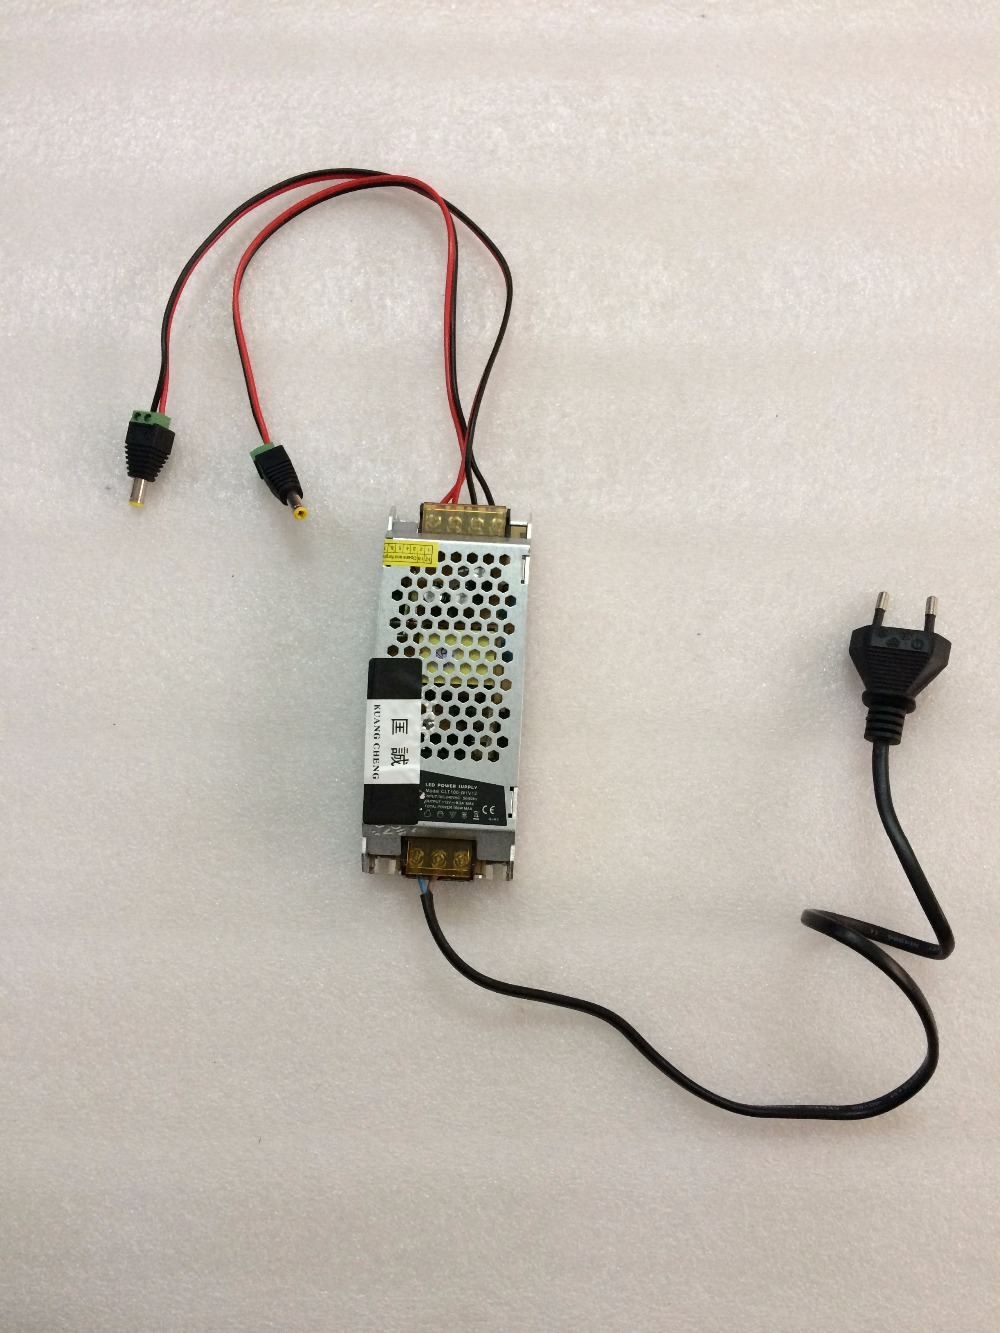 KUANGCHENG ASIC Miner Scrypt Miner gridseed blade Special power supply for USB small power miner. 100W 12V